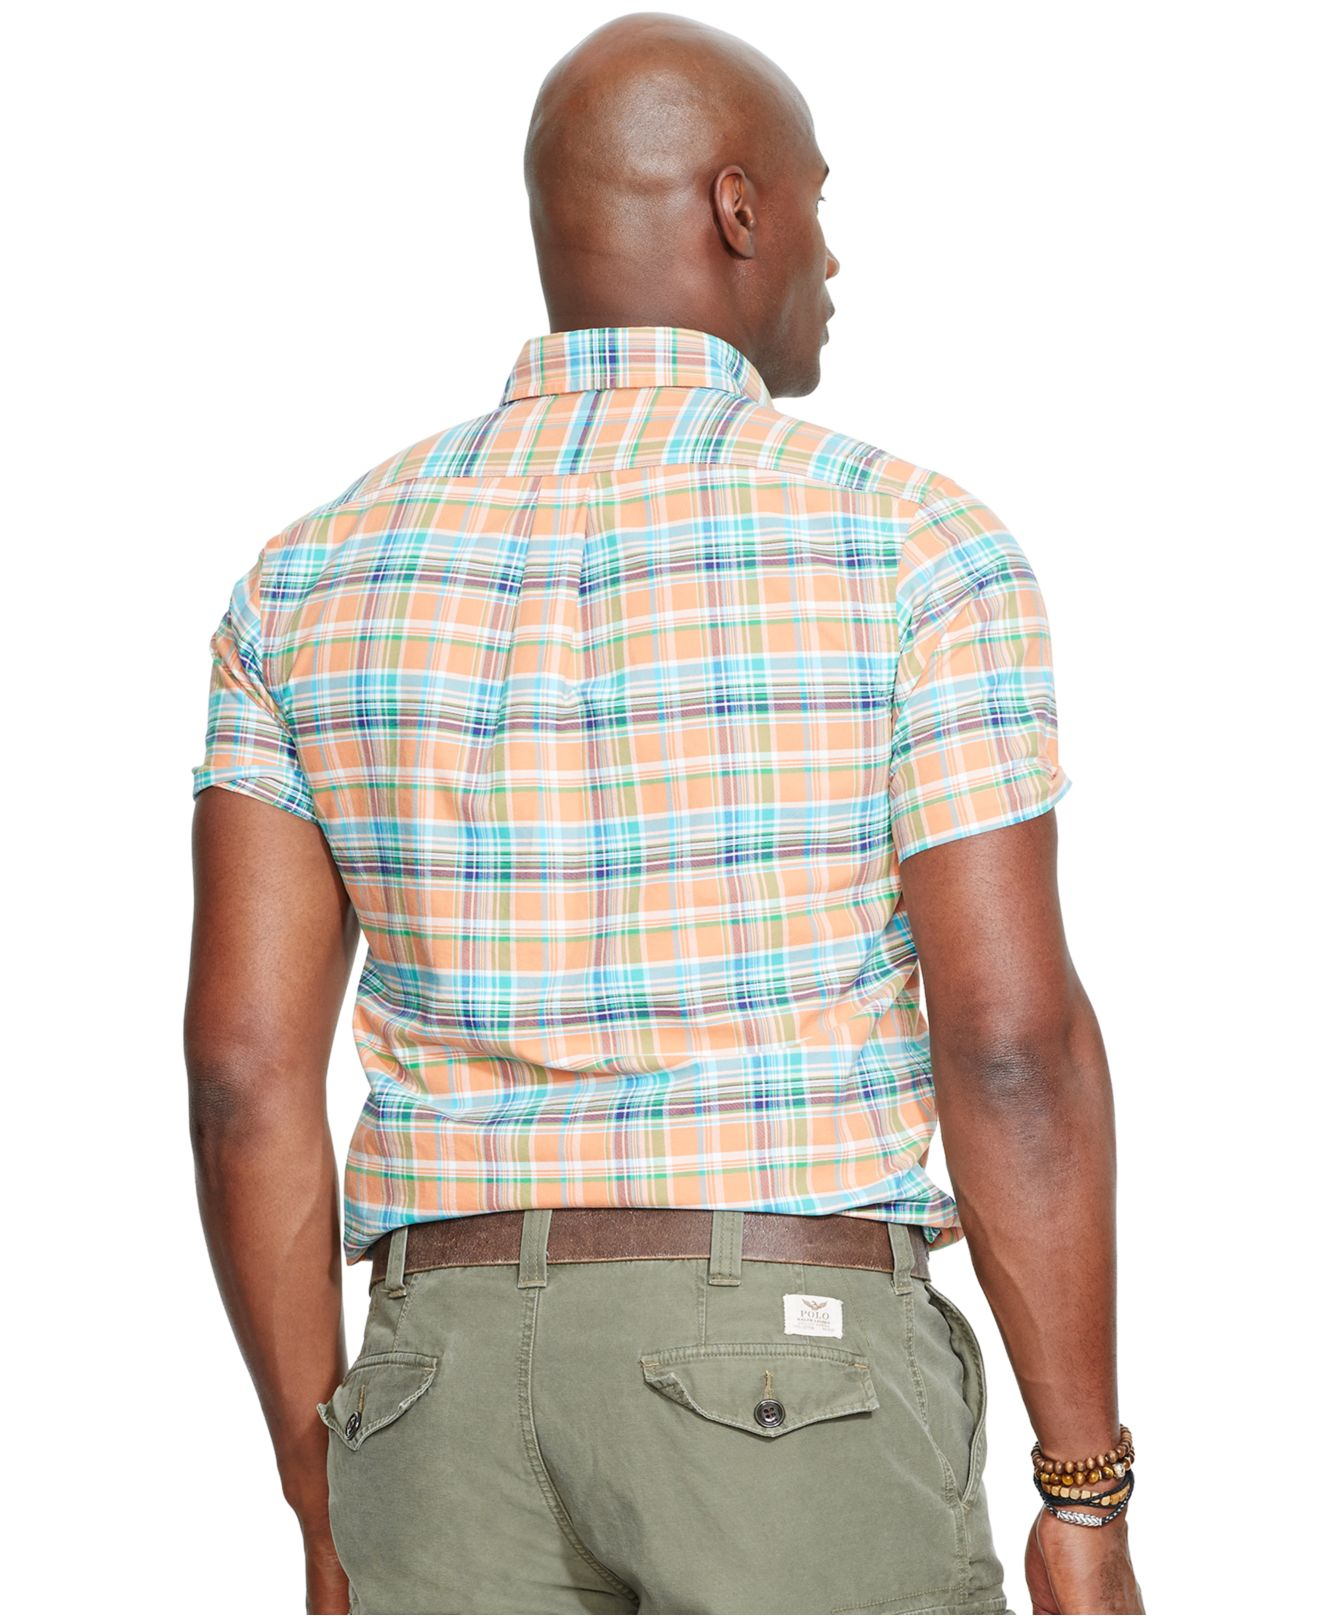 Polo ralph lauren big and tall short sleeved oxford shirt for Big and tall oxford shirts